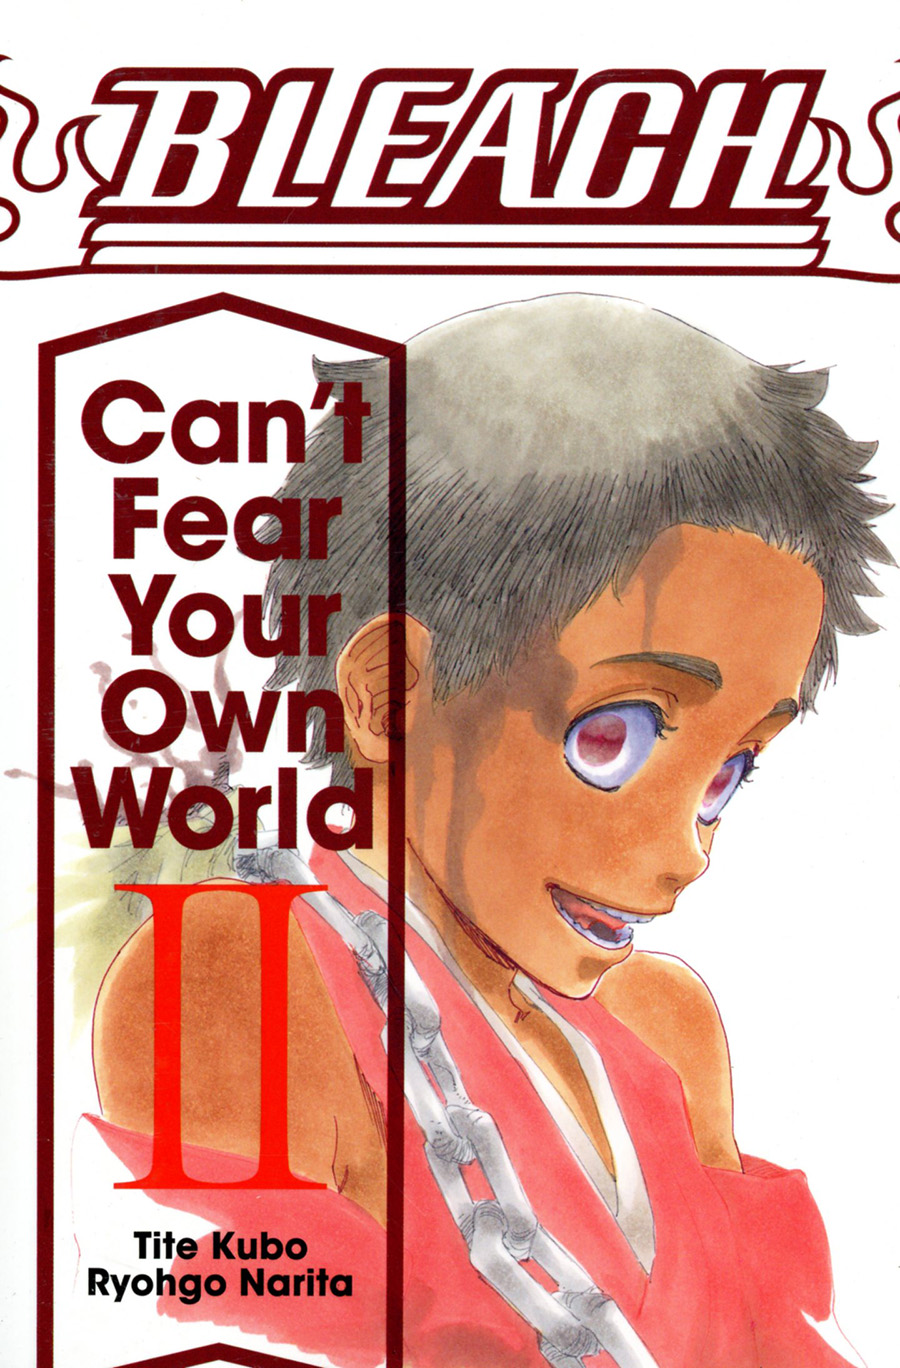 Bleach Cant Fear Your Own World Vol 2 TP